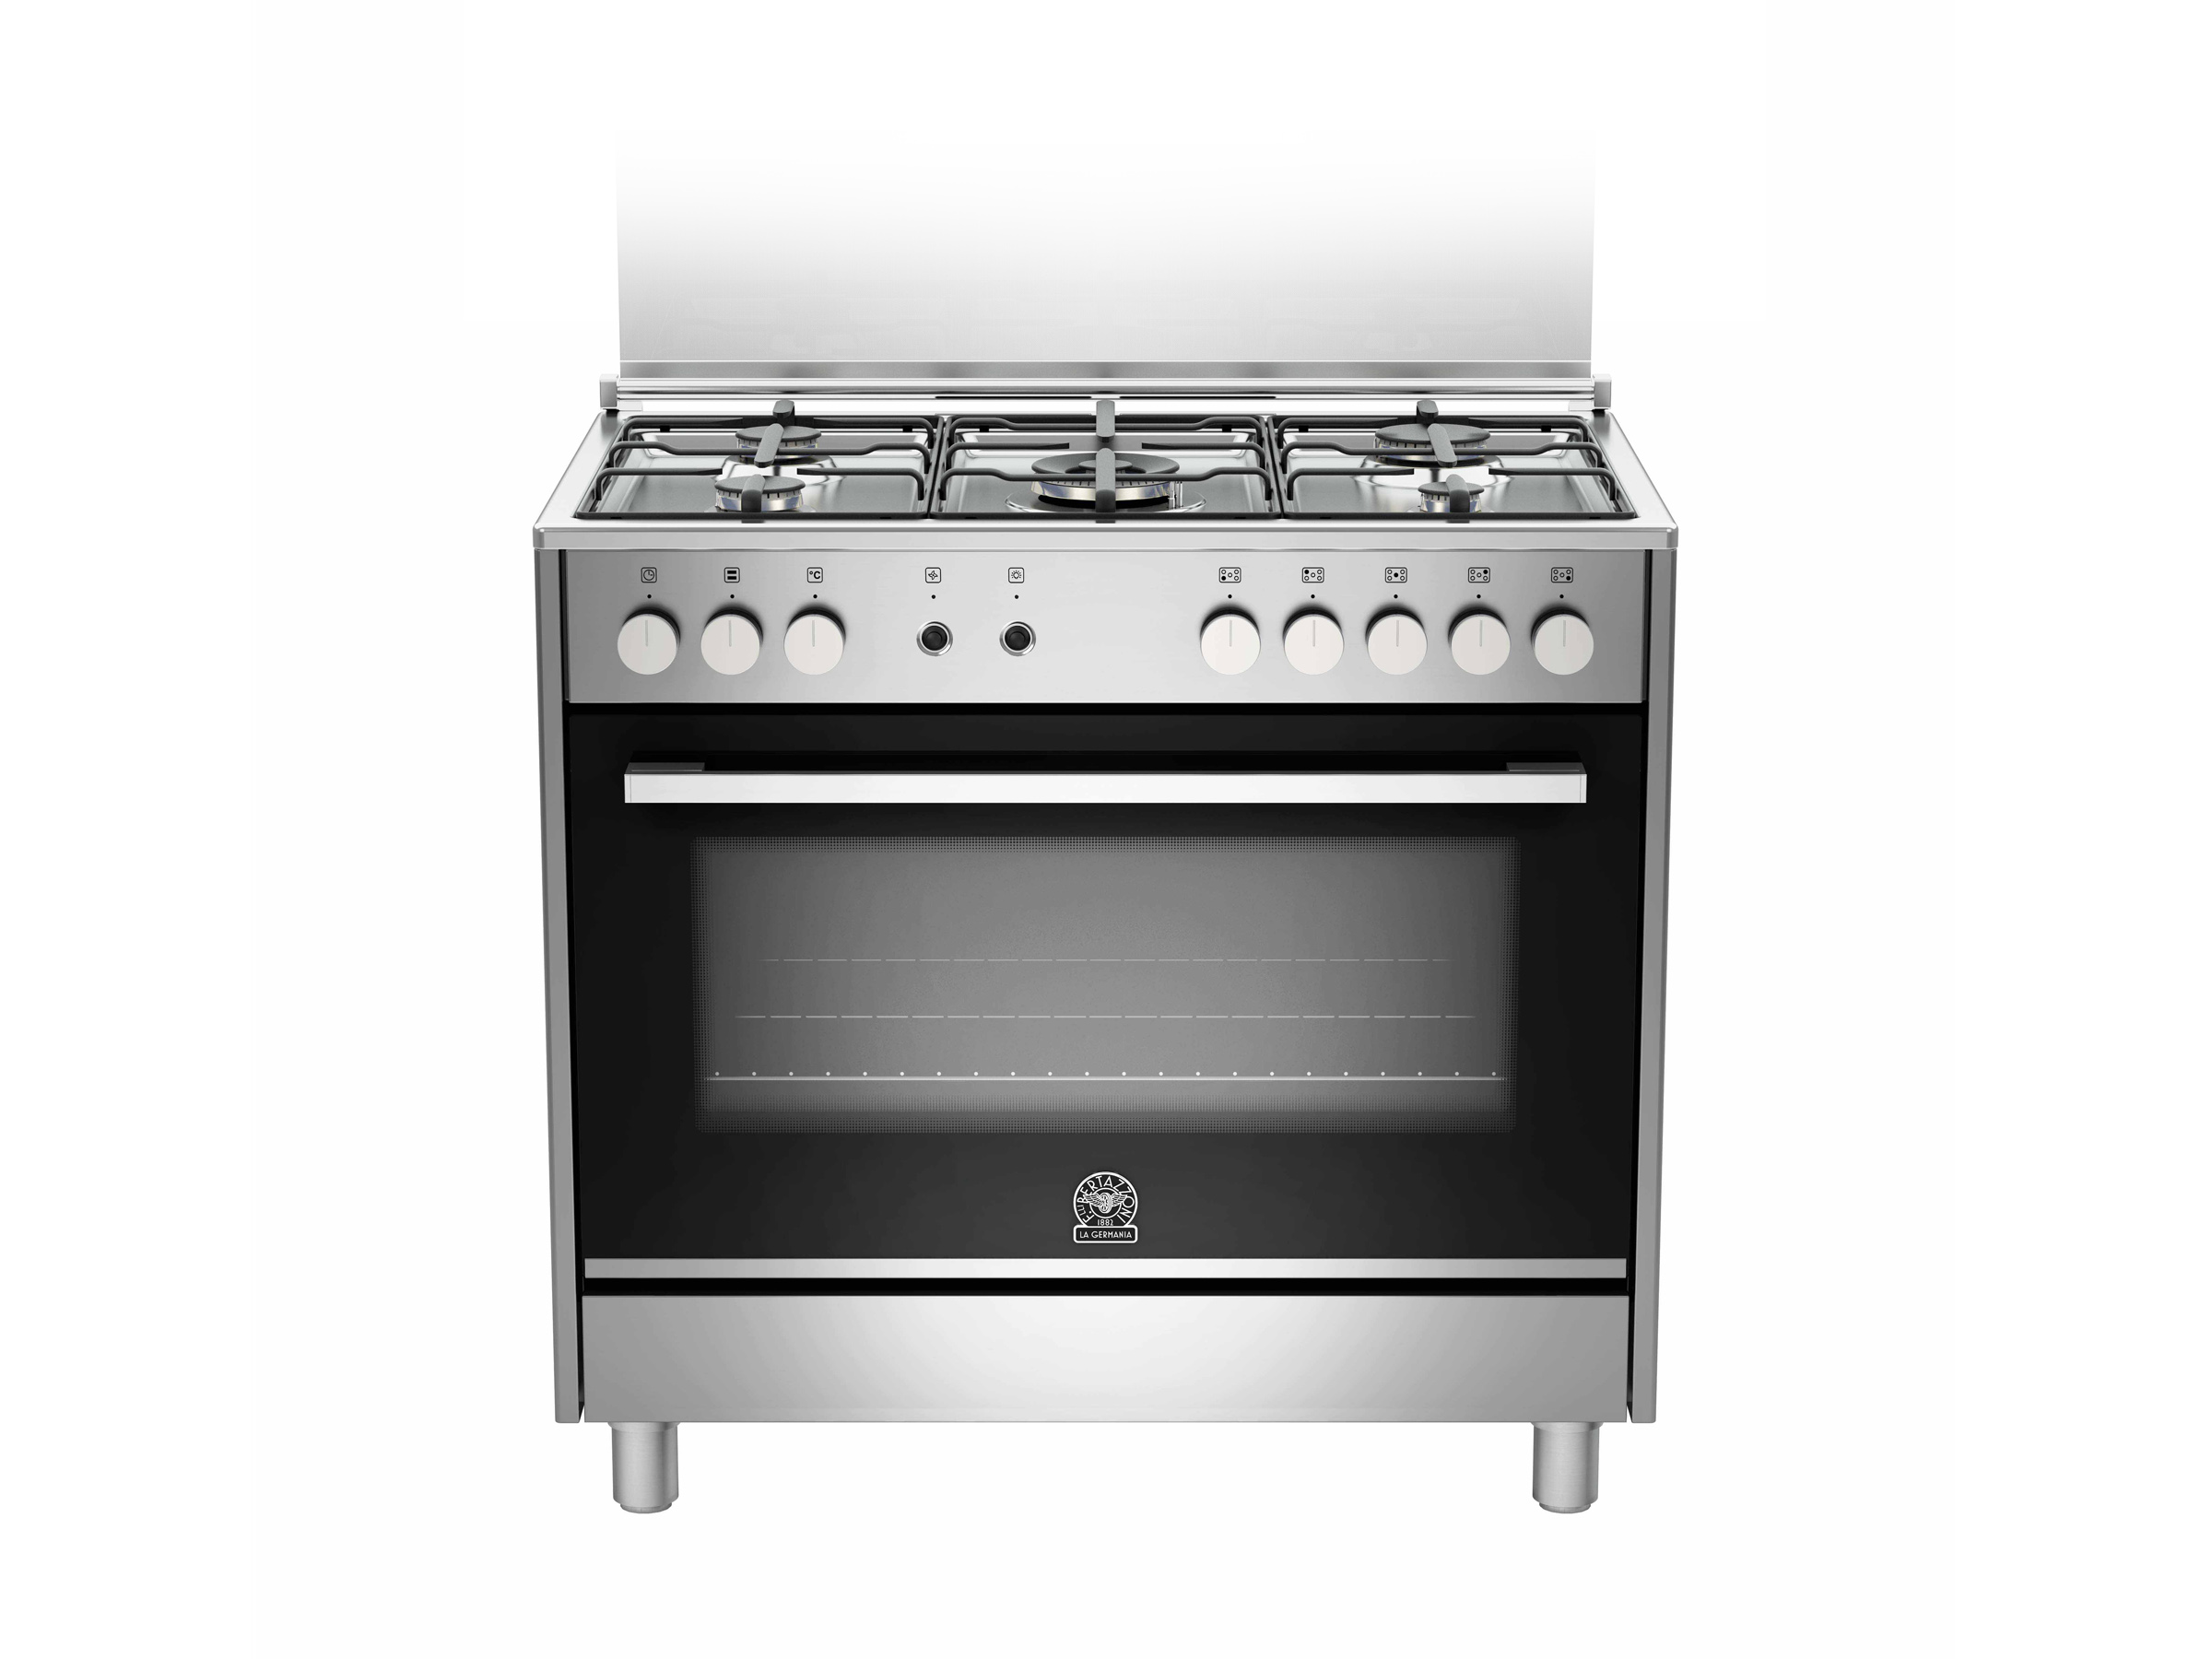 90 5-Burners 1-Hotplate Gas Oven DX | Bertazzoni La Germania - Stainless